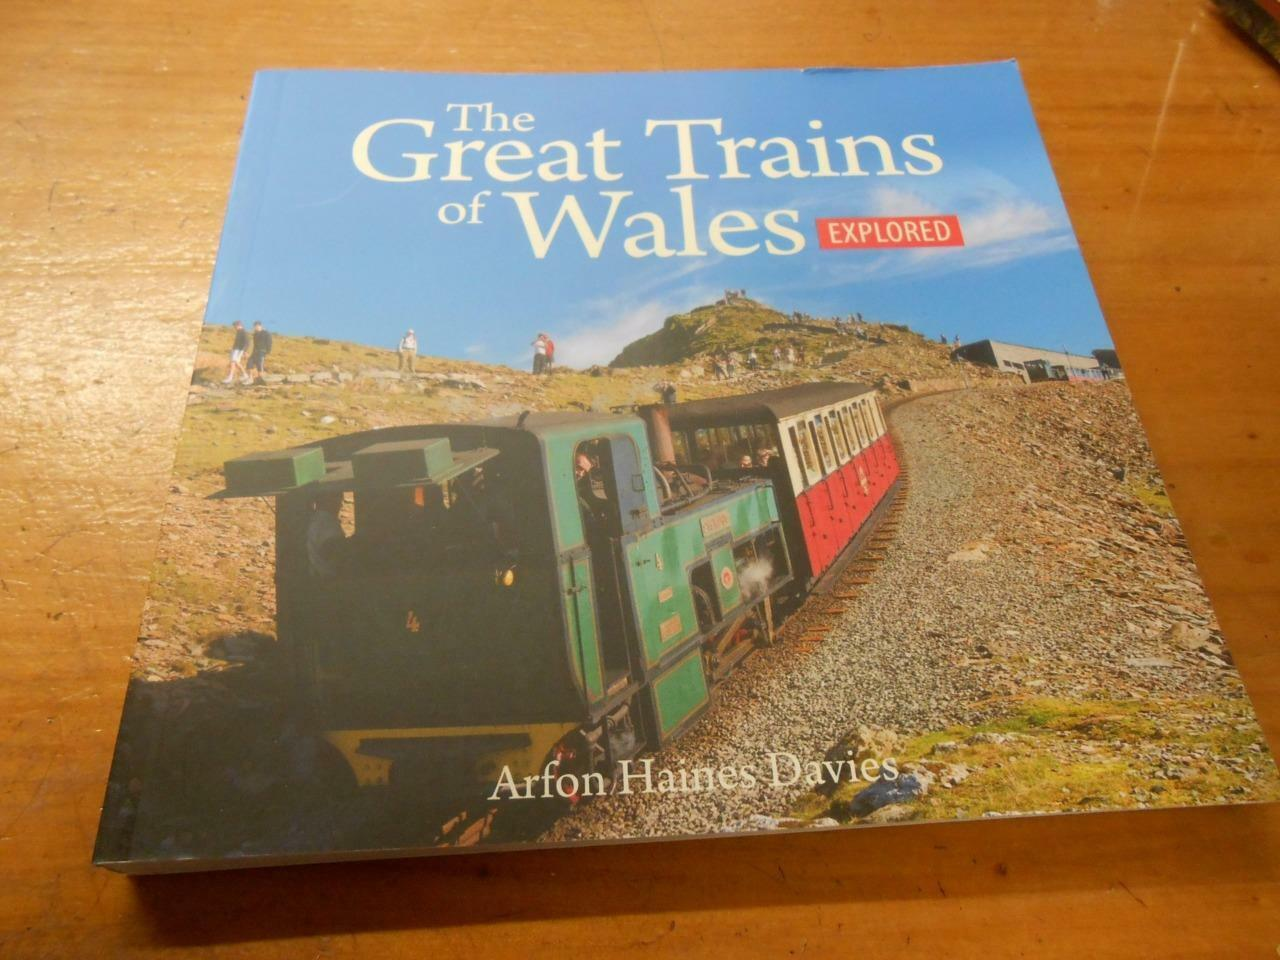 Great Trains of Wales Explored - Vale Rheidol FFestiniog Teifi Penrhyn Gwili - The Vale of Rheidol Railway